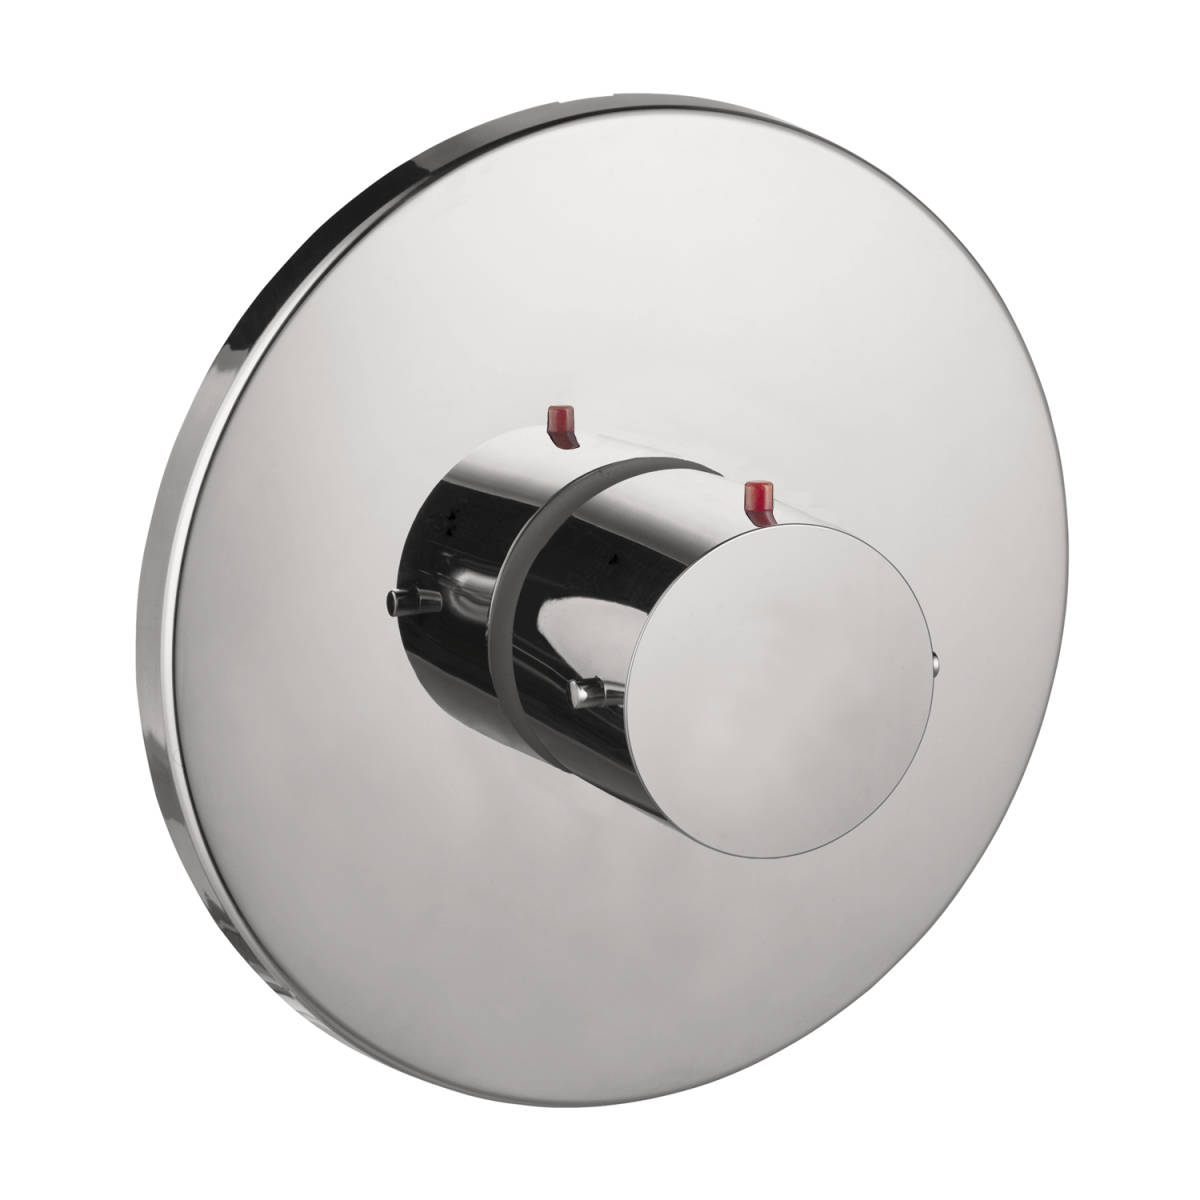 Thermostat HighFlow for concealed installation, Chrome, 10715001